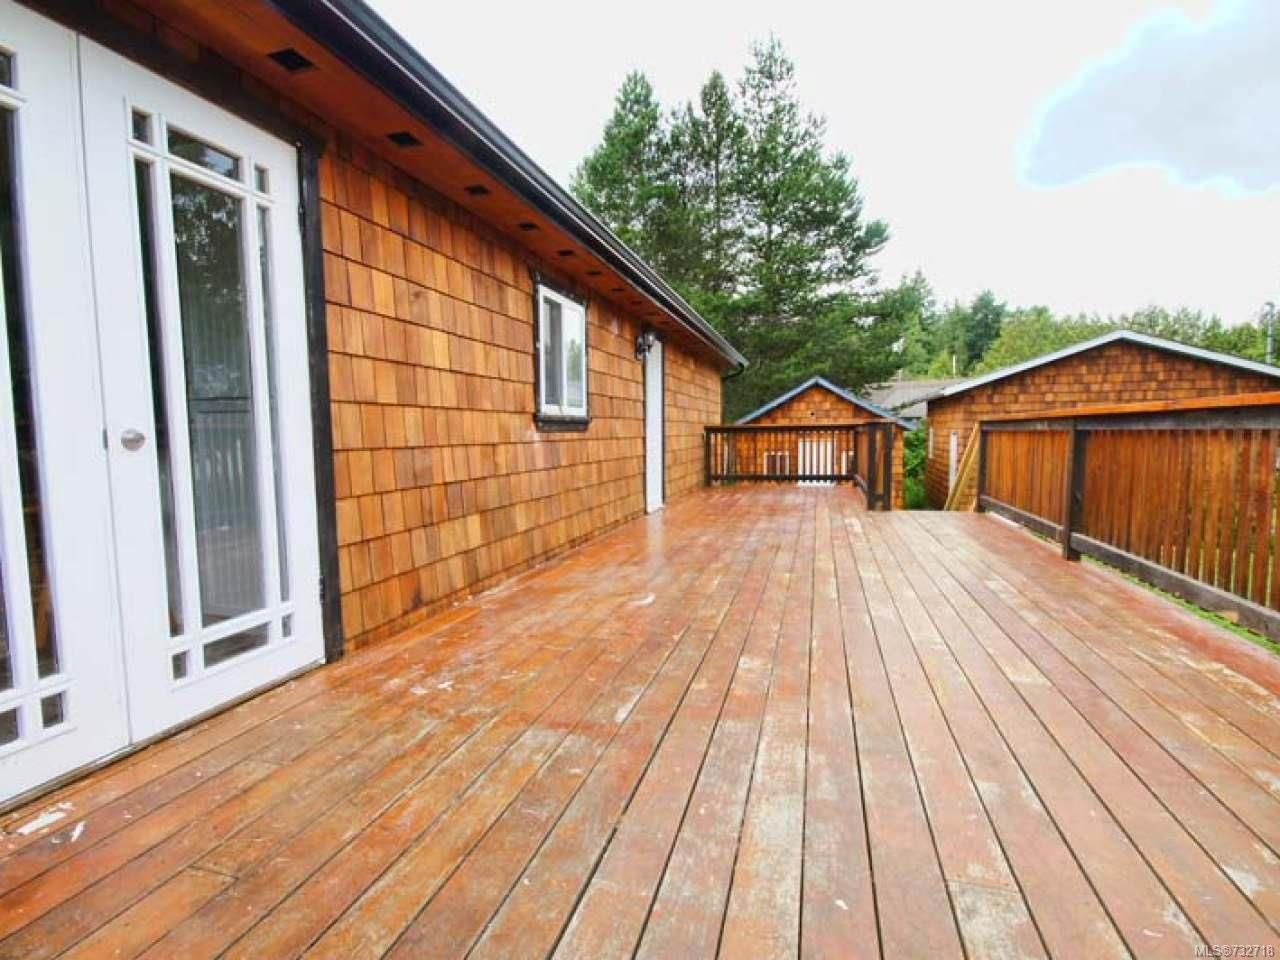 Photo 8: Photos: 921 POPLAR Way in ERRINGTON: PQ Errington/Coombs/Hilliers Manufactured Home for sale (Parksville/Qualicum)  : MLS®# 732718